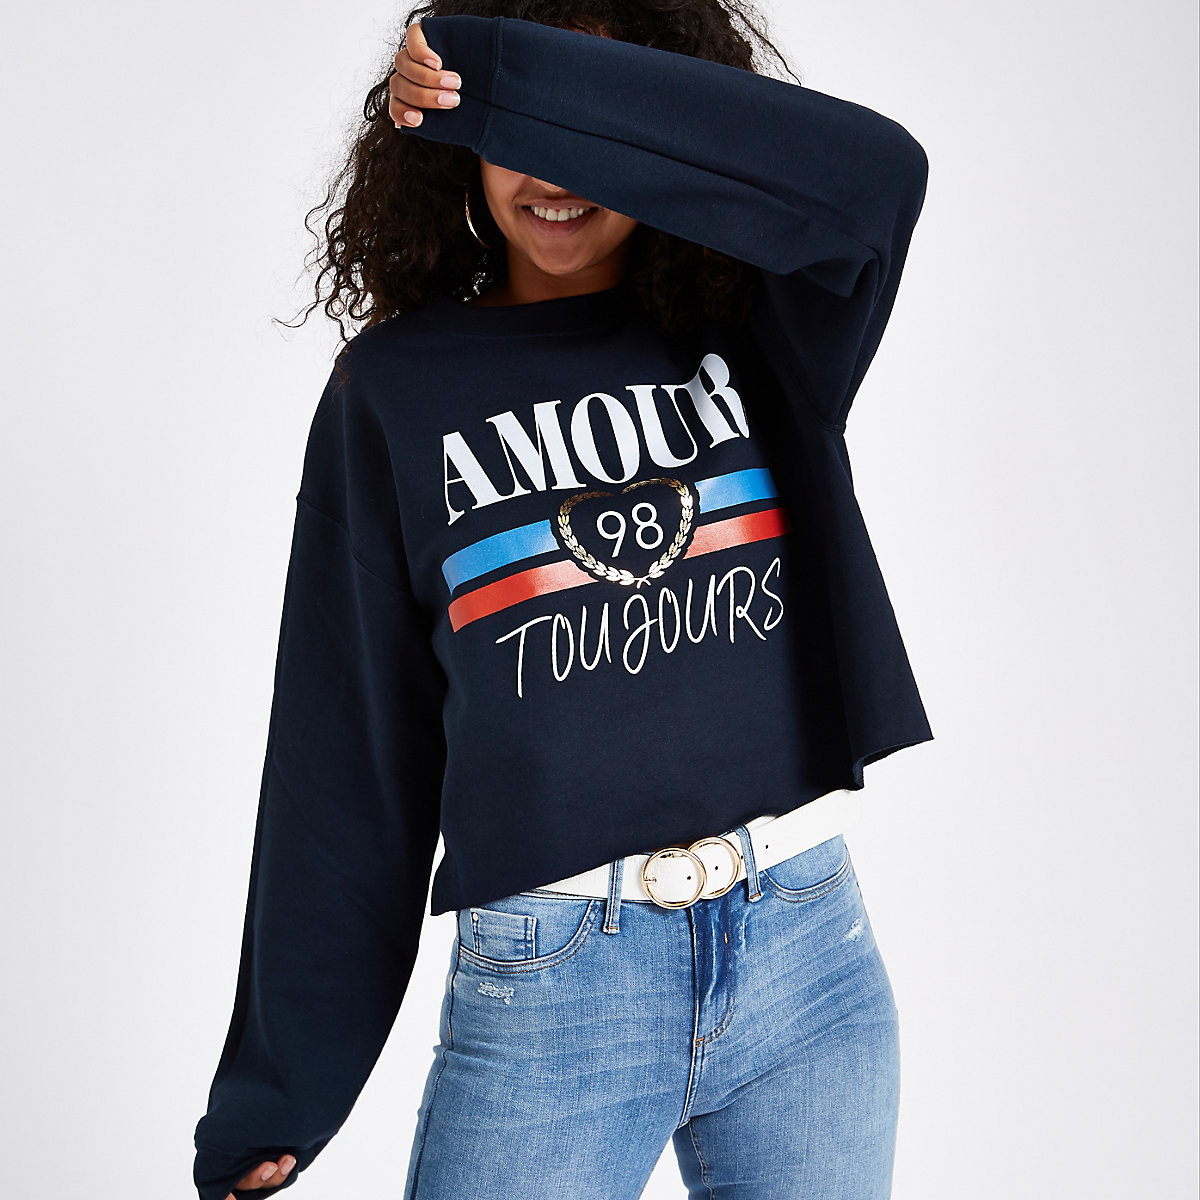 Navy 'Amour toujours' sweater